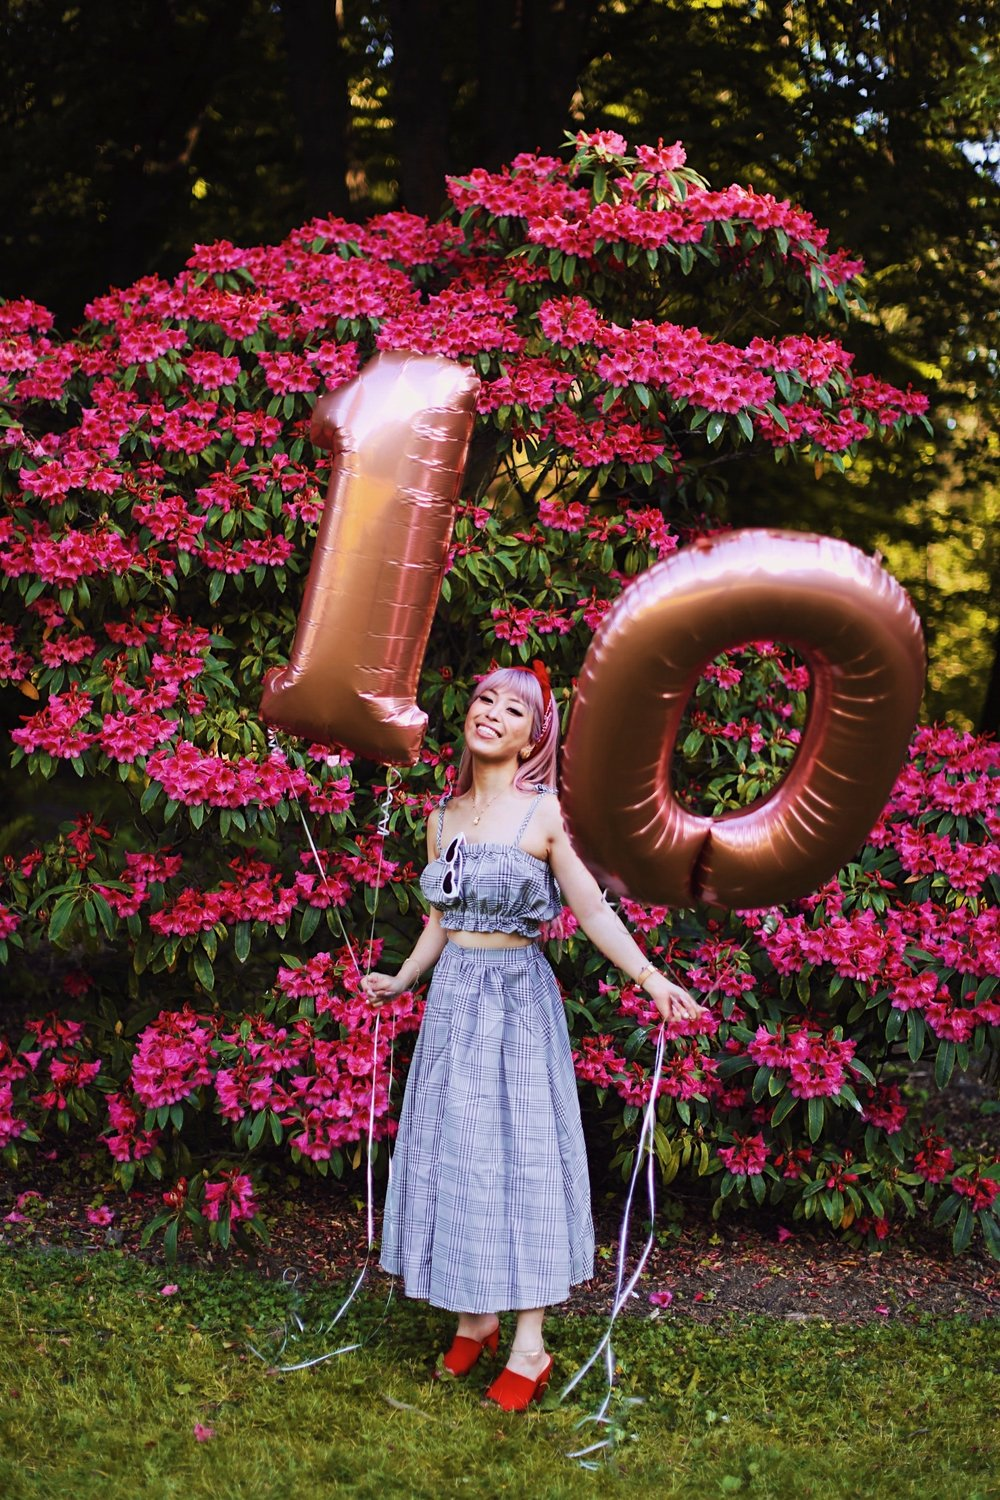 Aika's Love Closet-Seattle Style Life Style Blogger-Japanese-10 Year Anniversary-living in America-what I've learned from Living Abroad-life lessons-pink hair-zero uv heart sunglasses-rose gold balloons-smile 14